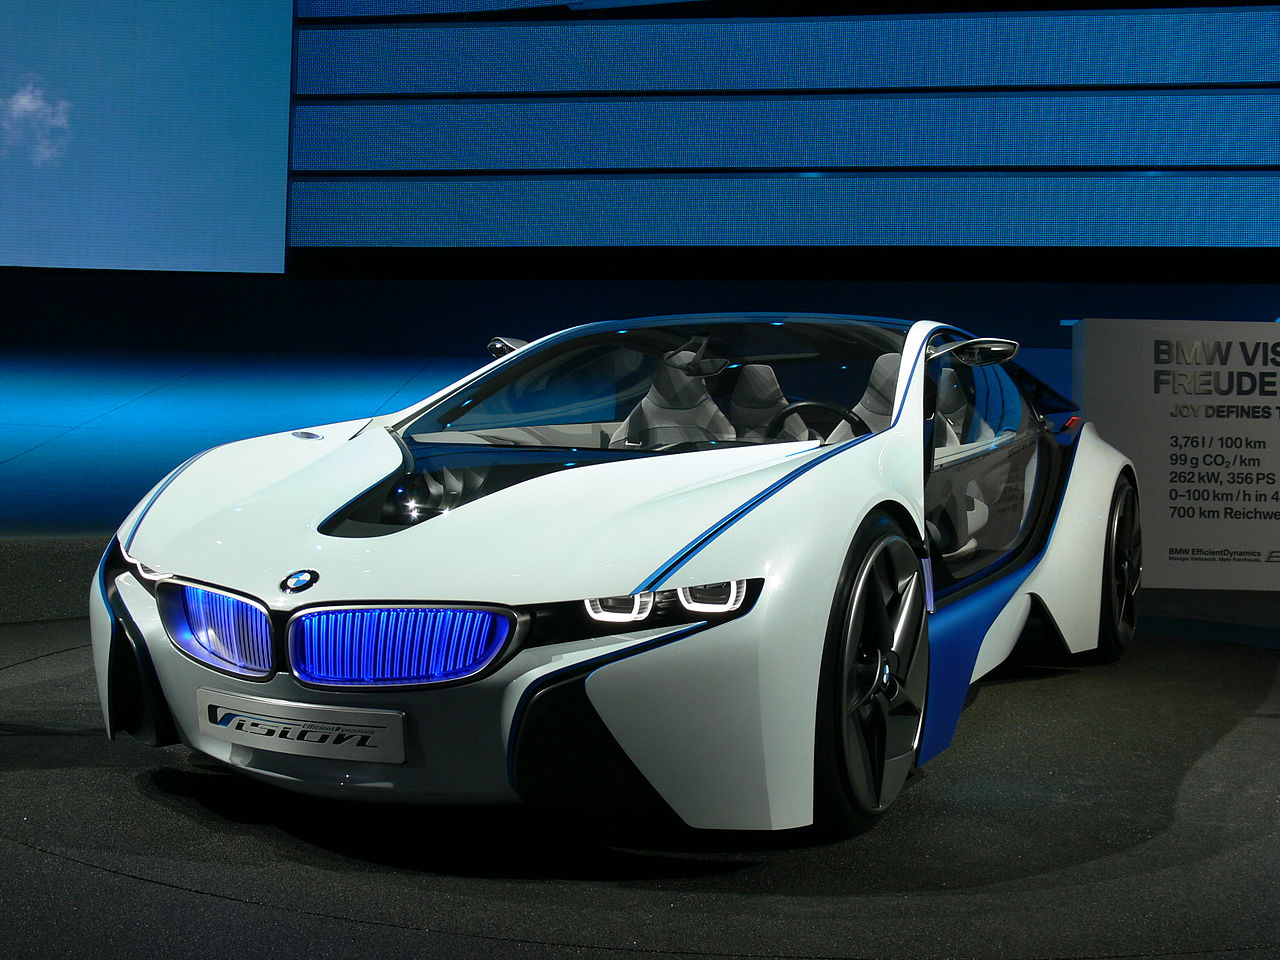 1280px-BMW_Concept_Vision_Efficient_Dynamics_Front.JPG